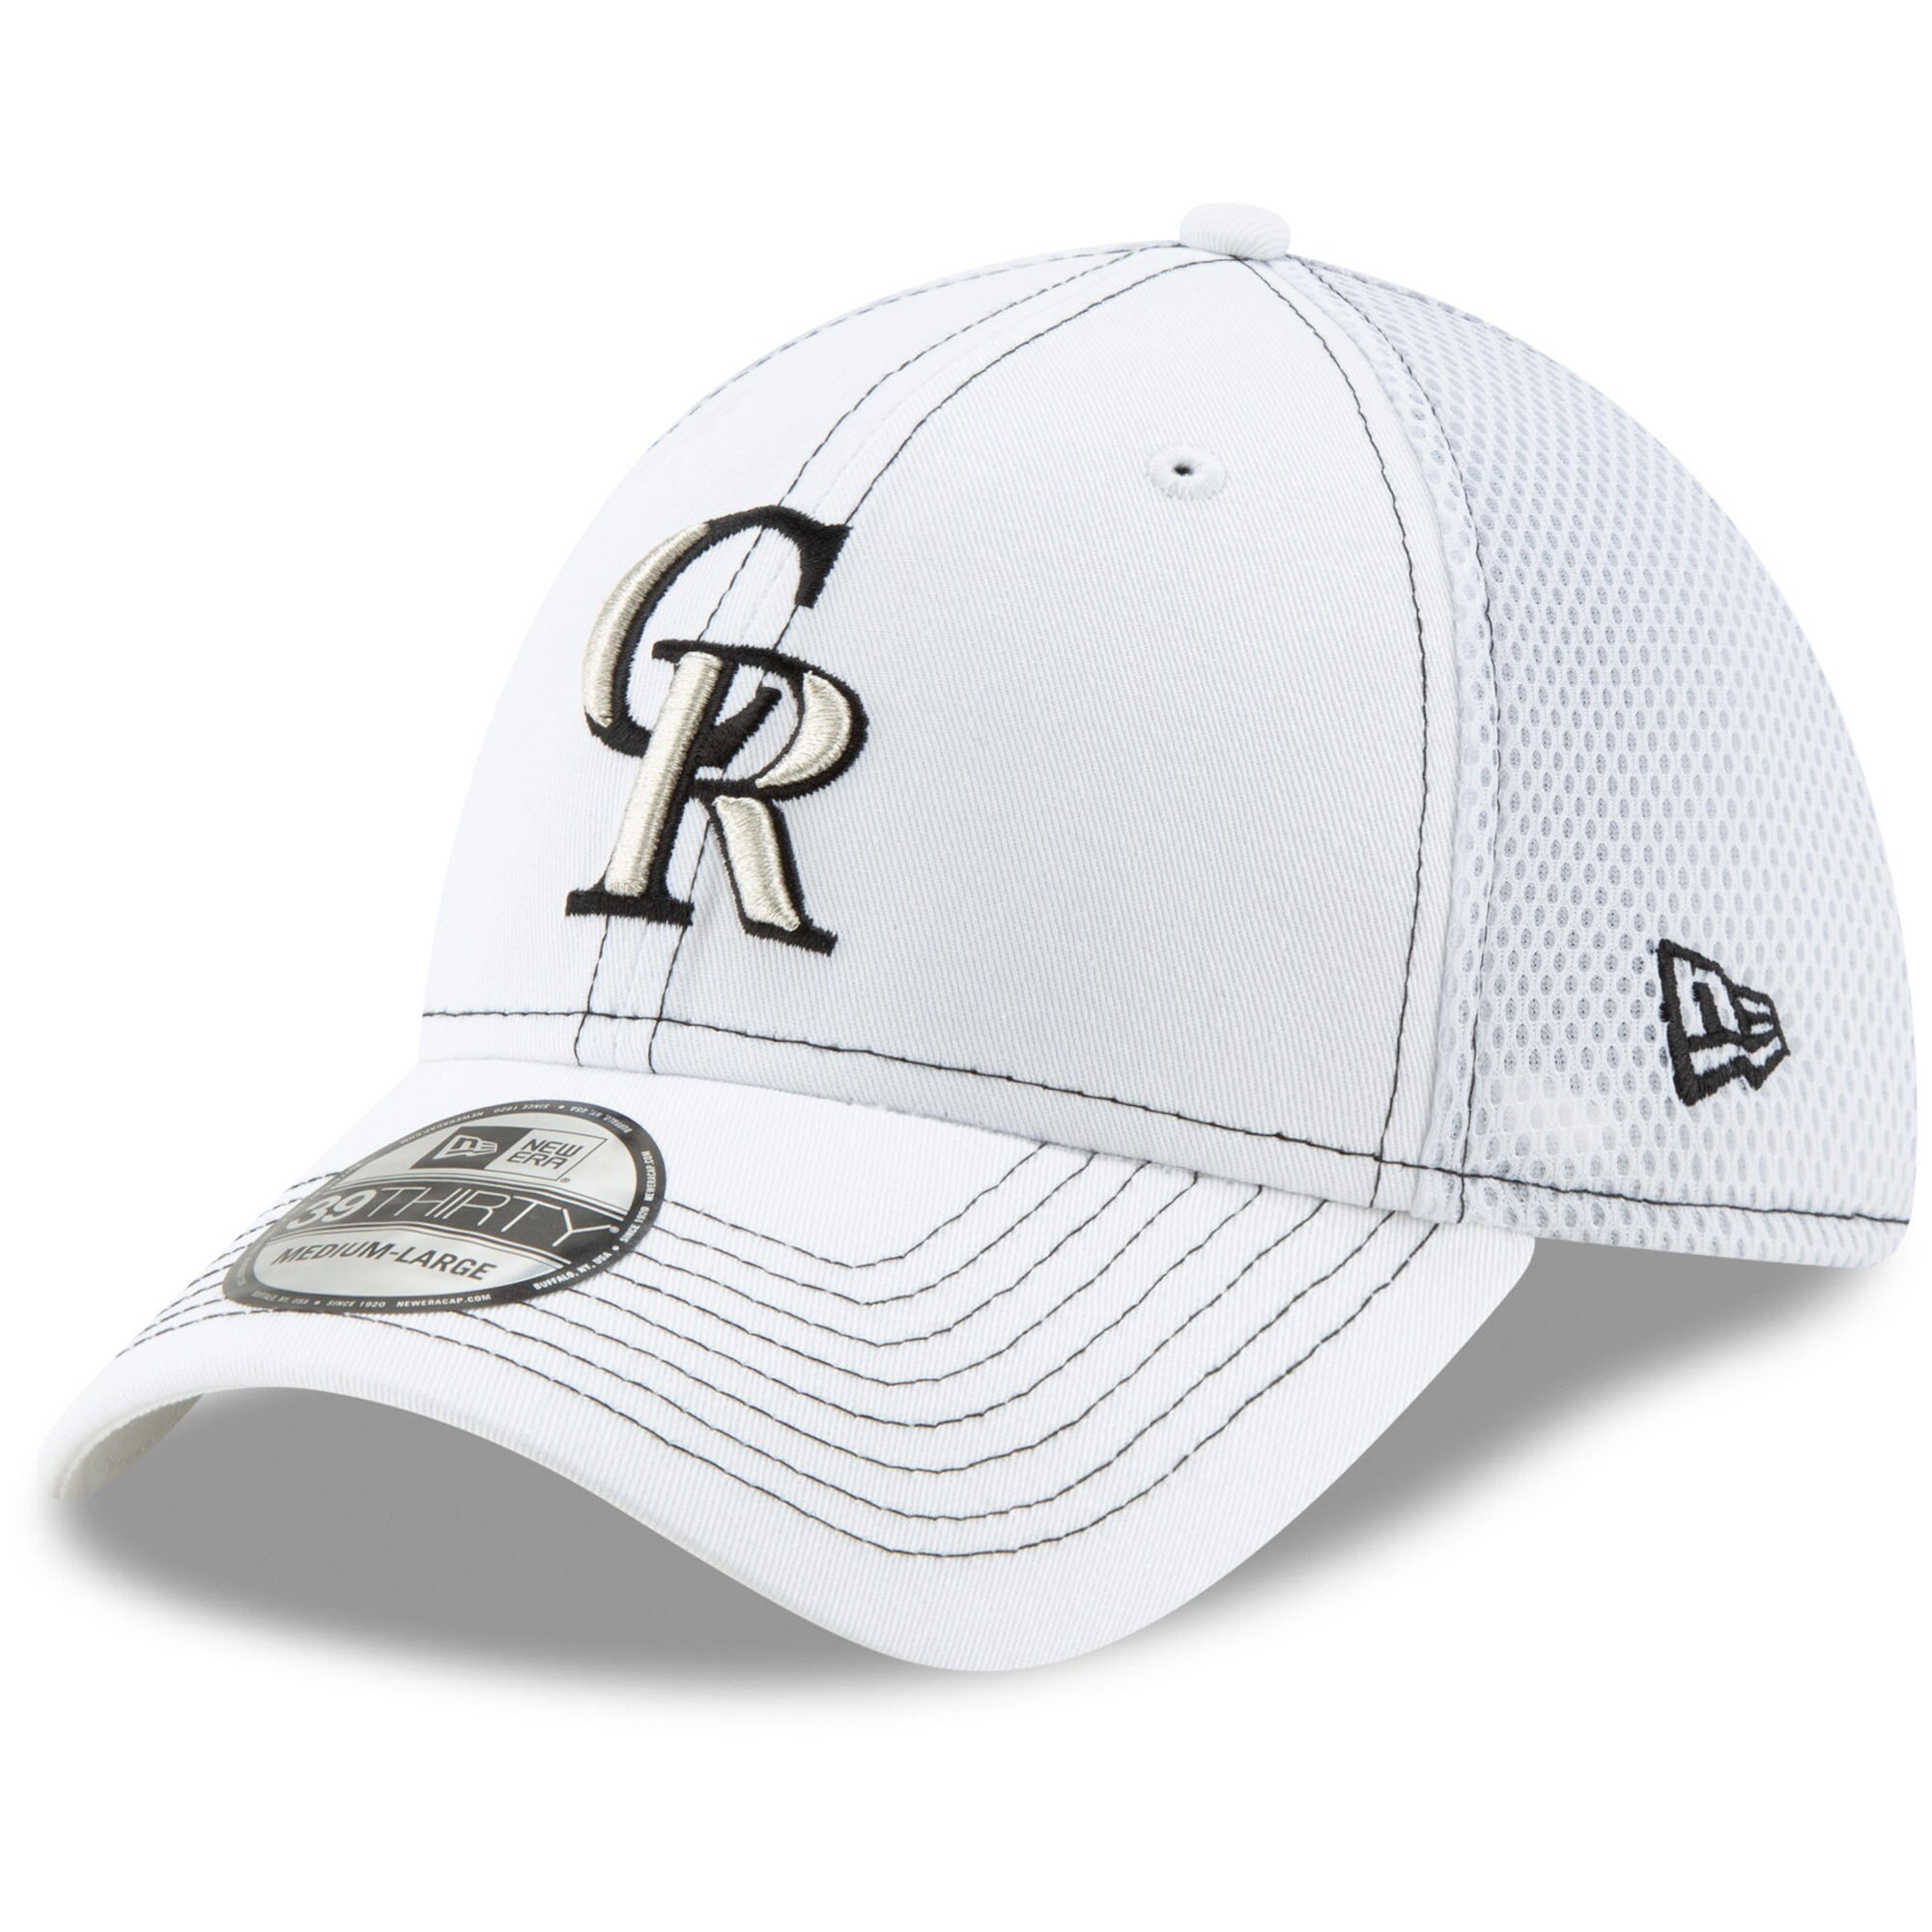 Colorado Rockies New Era Team Neo 39THIRTY Flex Hat - White